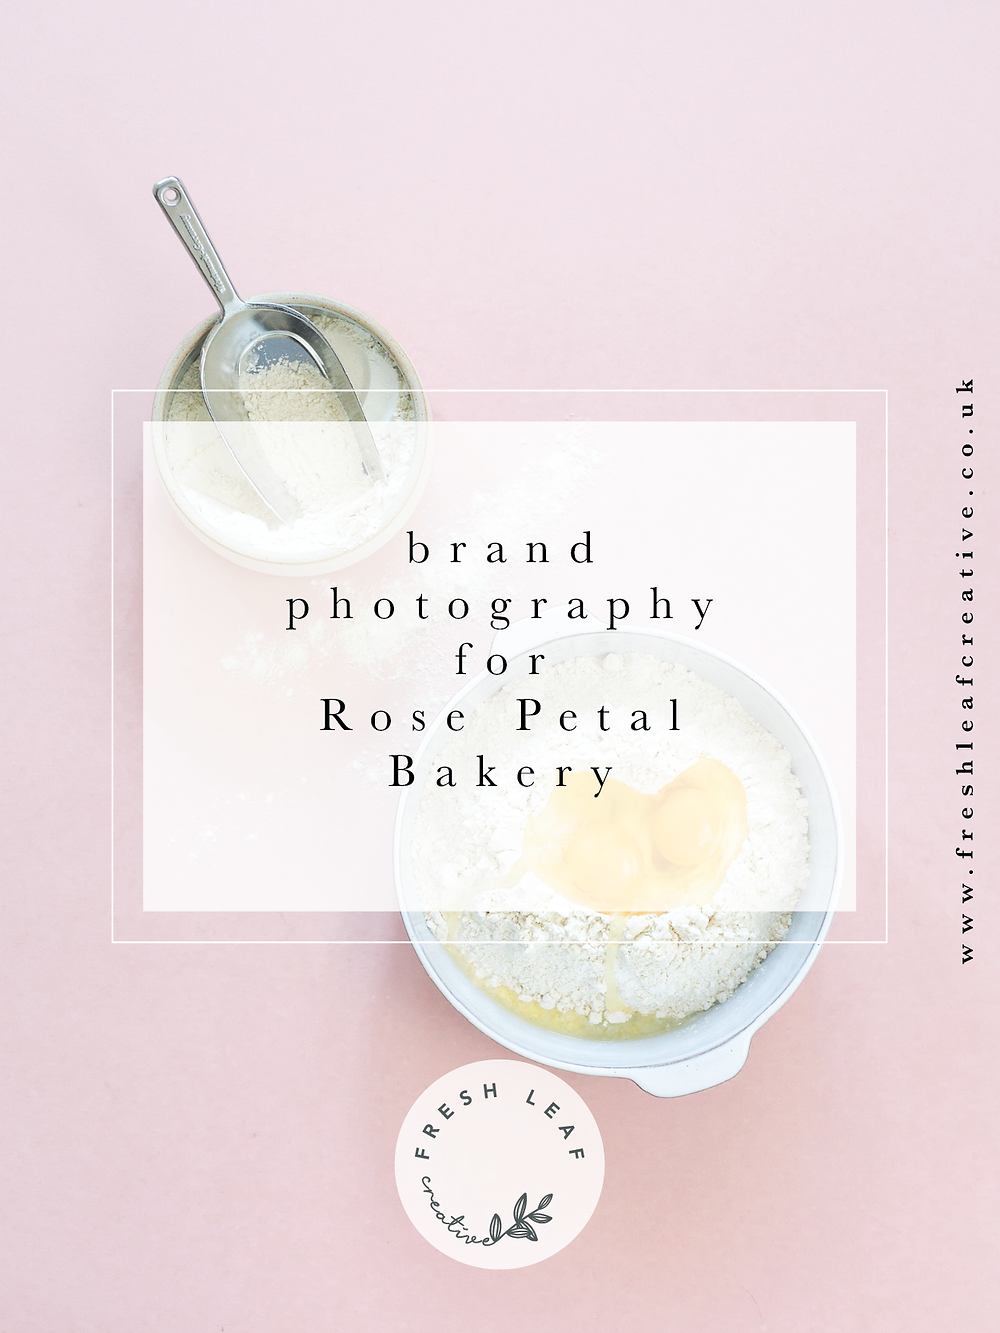 Personal Brand Photographer Surrey | Personal brand photography for small businesses, coaches, creators and makers | Rose Petal Bakery Photography